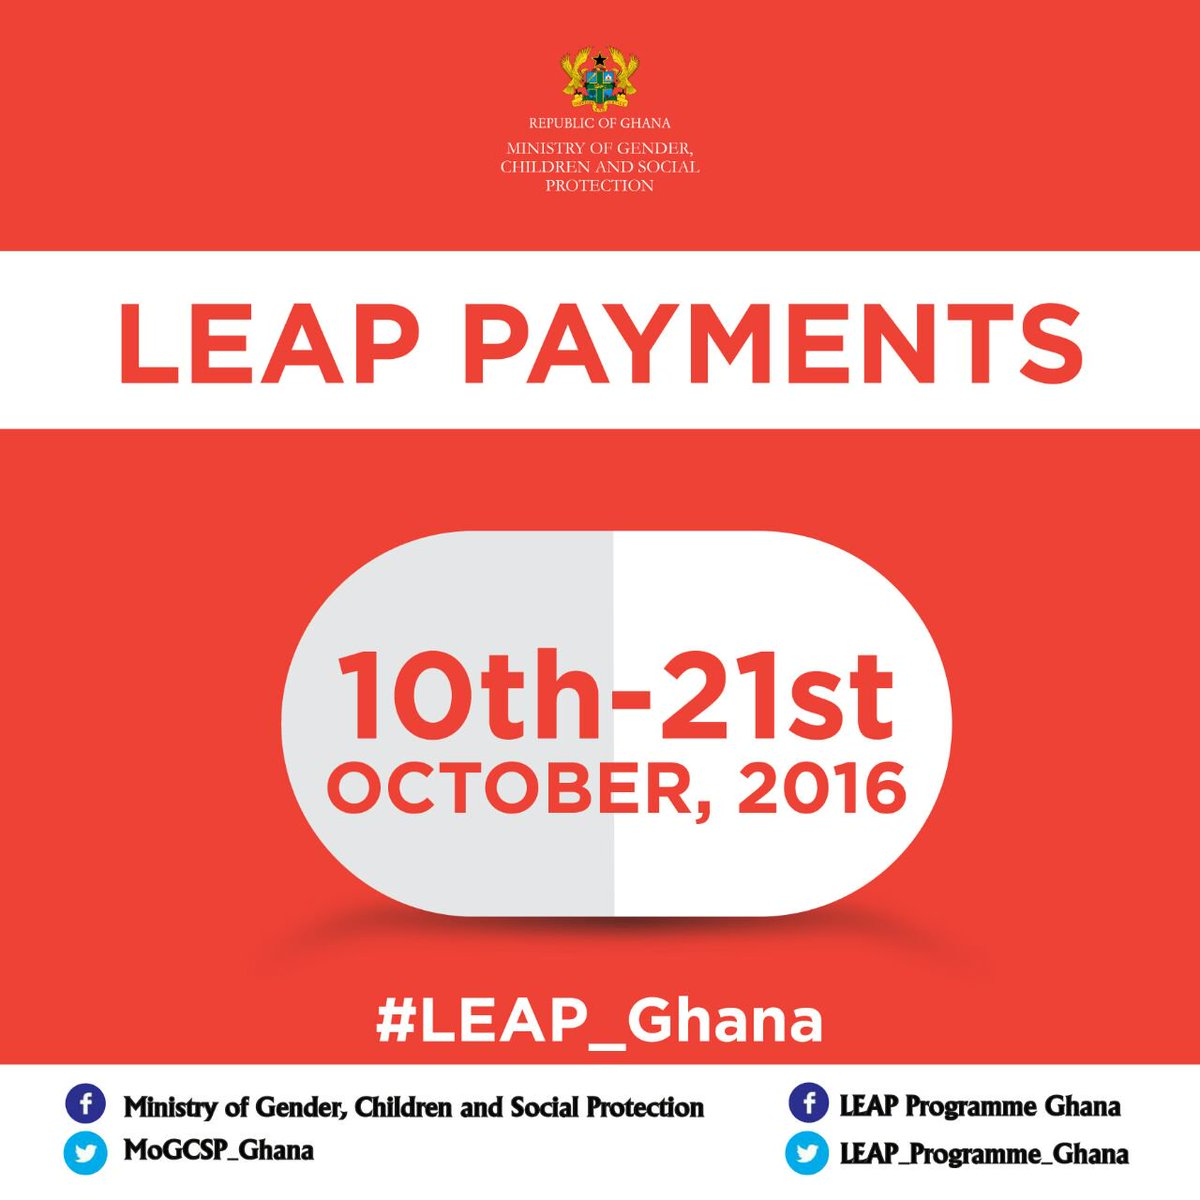 From next week, 212,848 LEAP households in all the 216 districts of Ghana will be paid their cash grant.